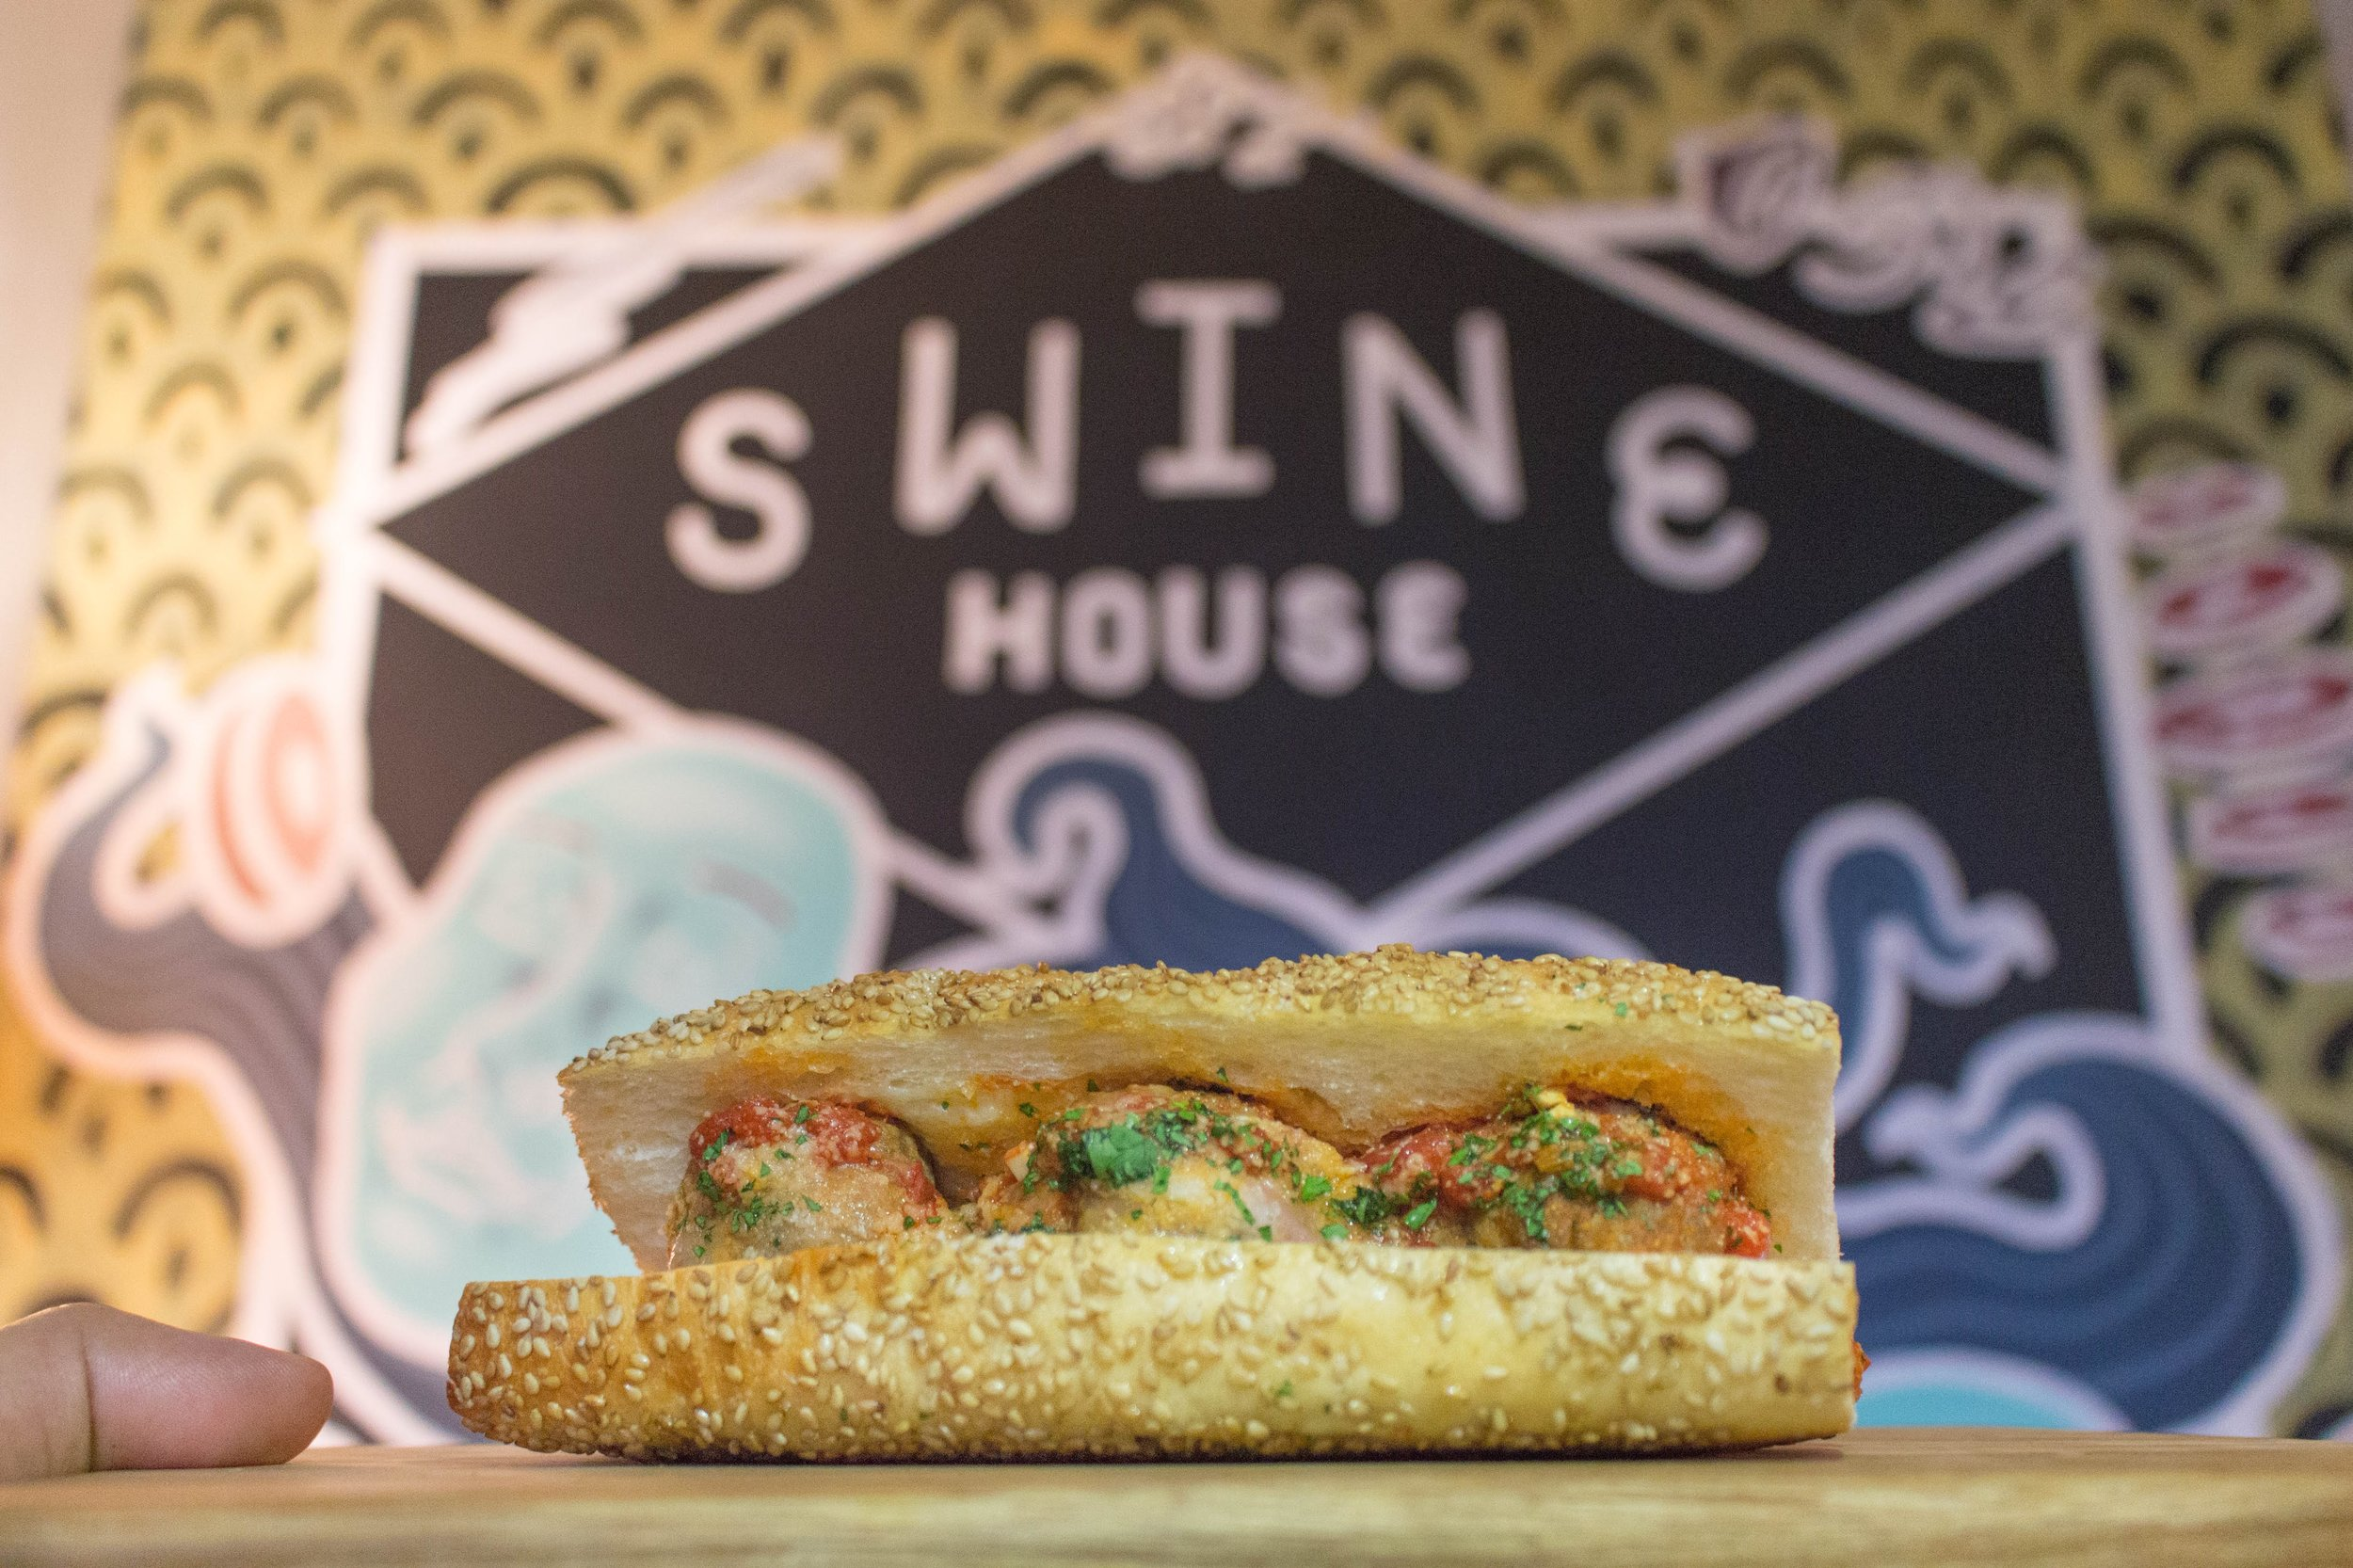 Swine House Bodega Is Now Open!!! -